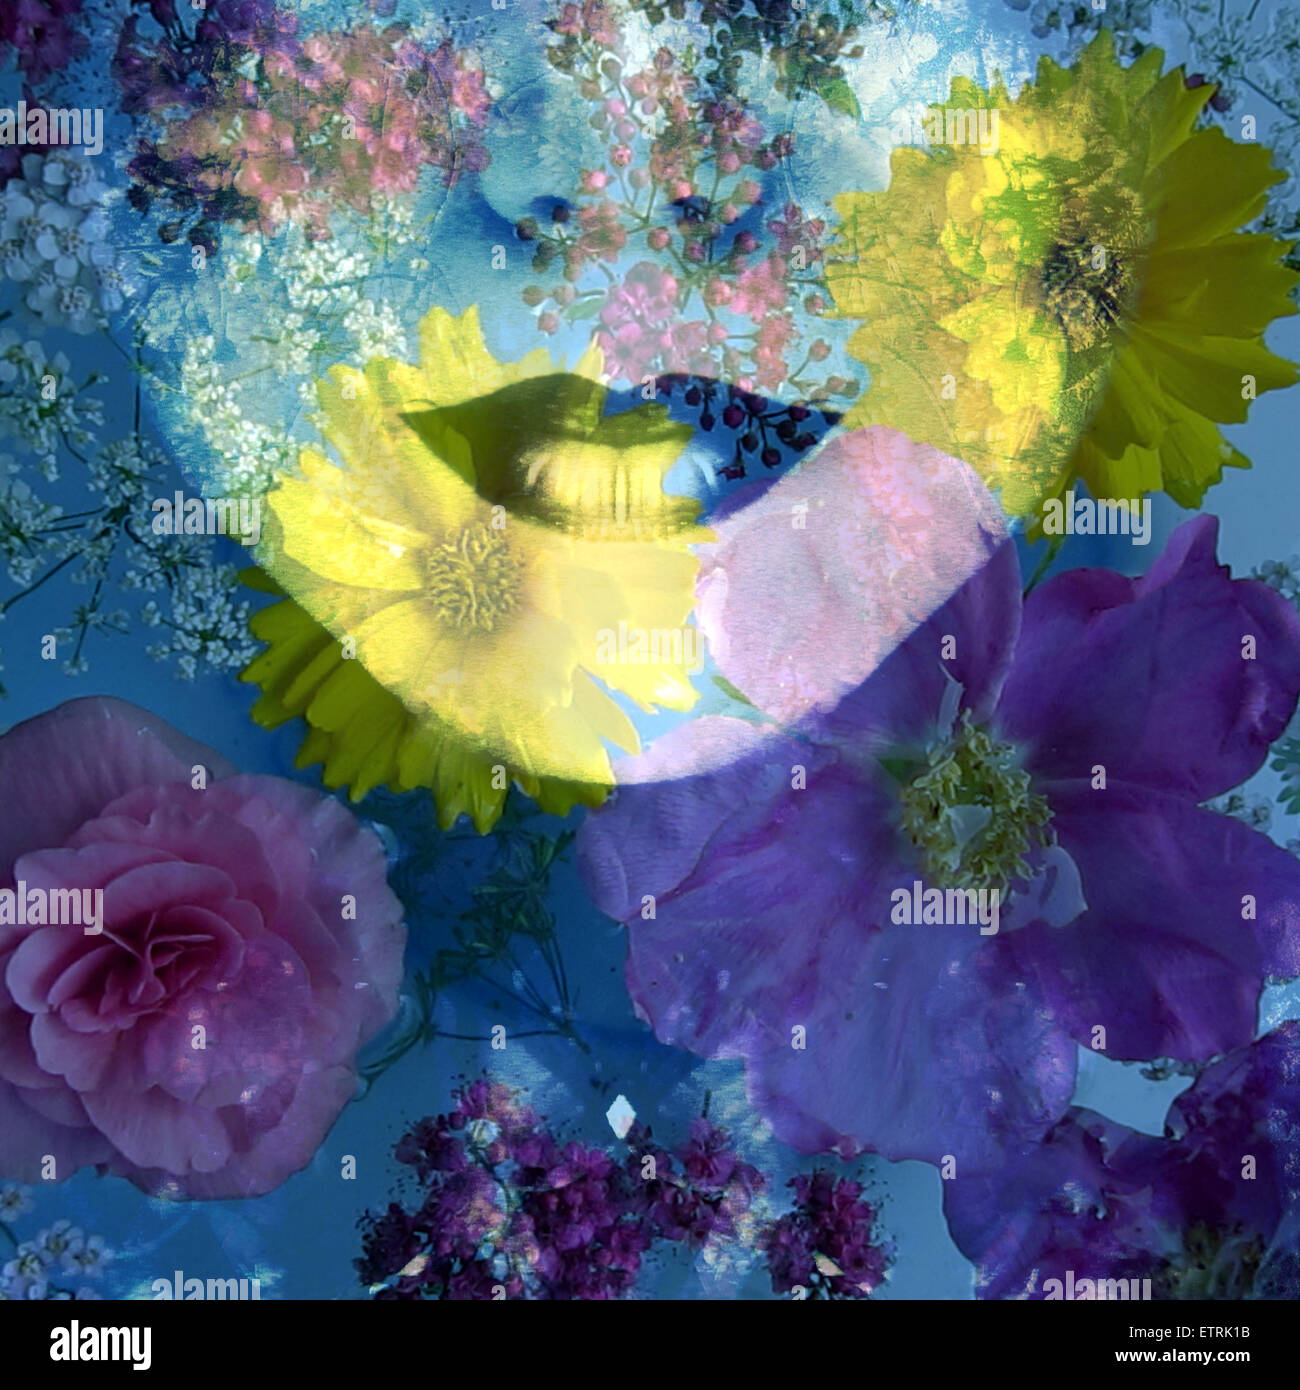 poetic montage of a portrait with colorful floral ornaments - Stock Image